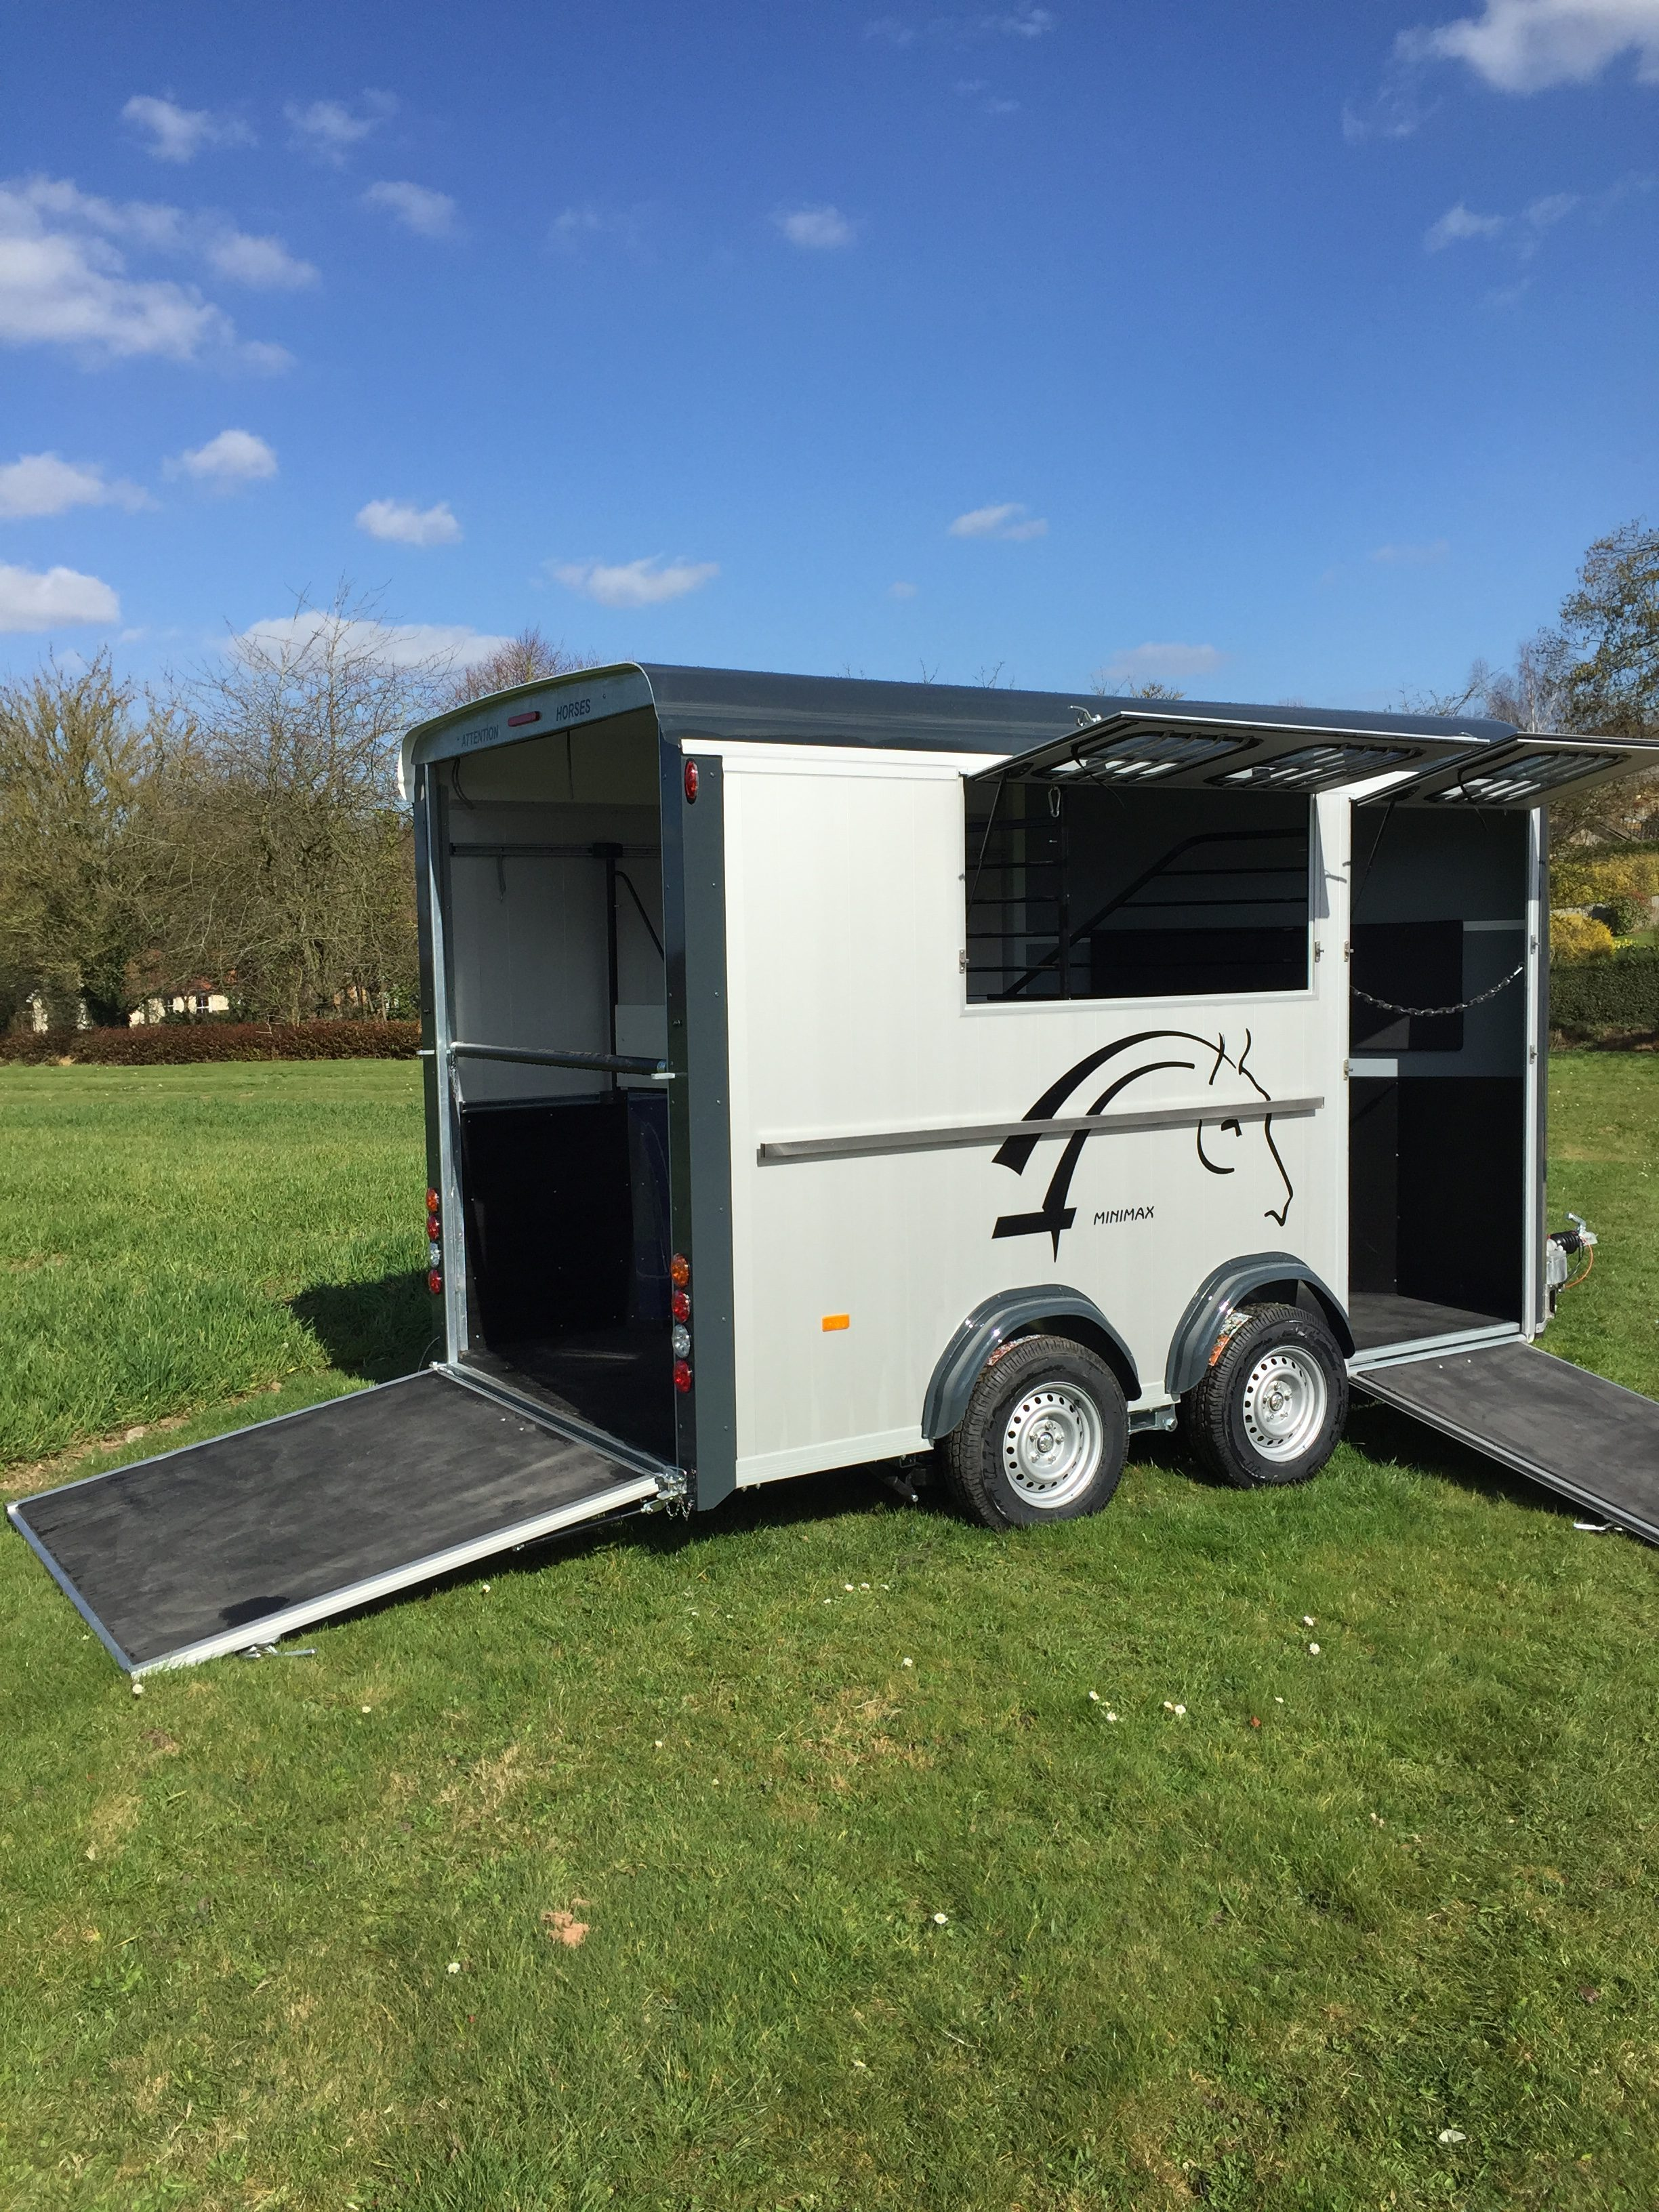 Cheval Libert 233 Minimax Anglian Trailer Centre